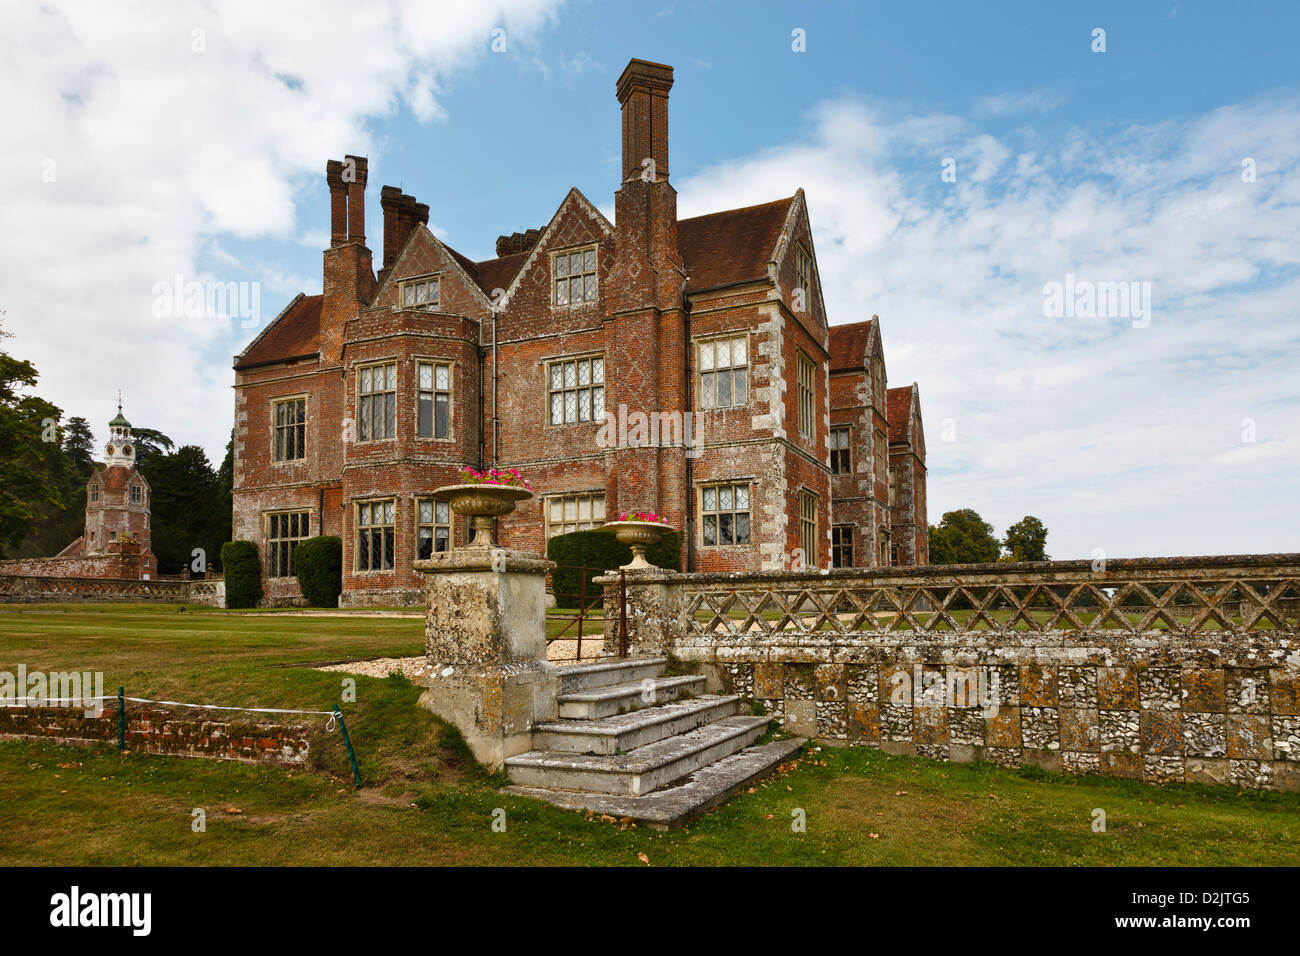 Breamore House, New Forest, Hampshire, England - Stock Image